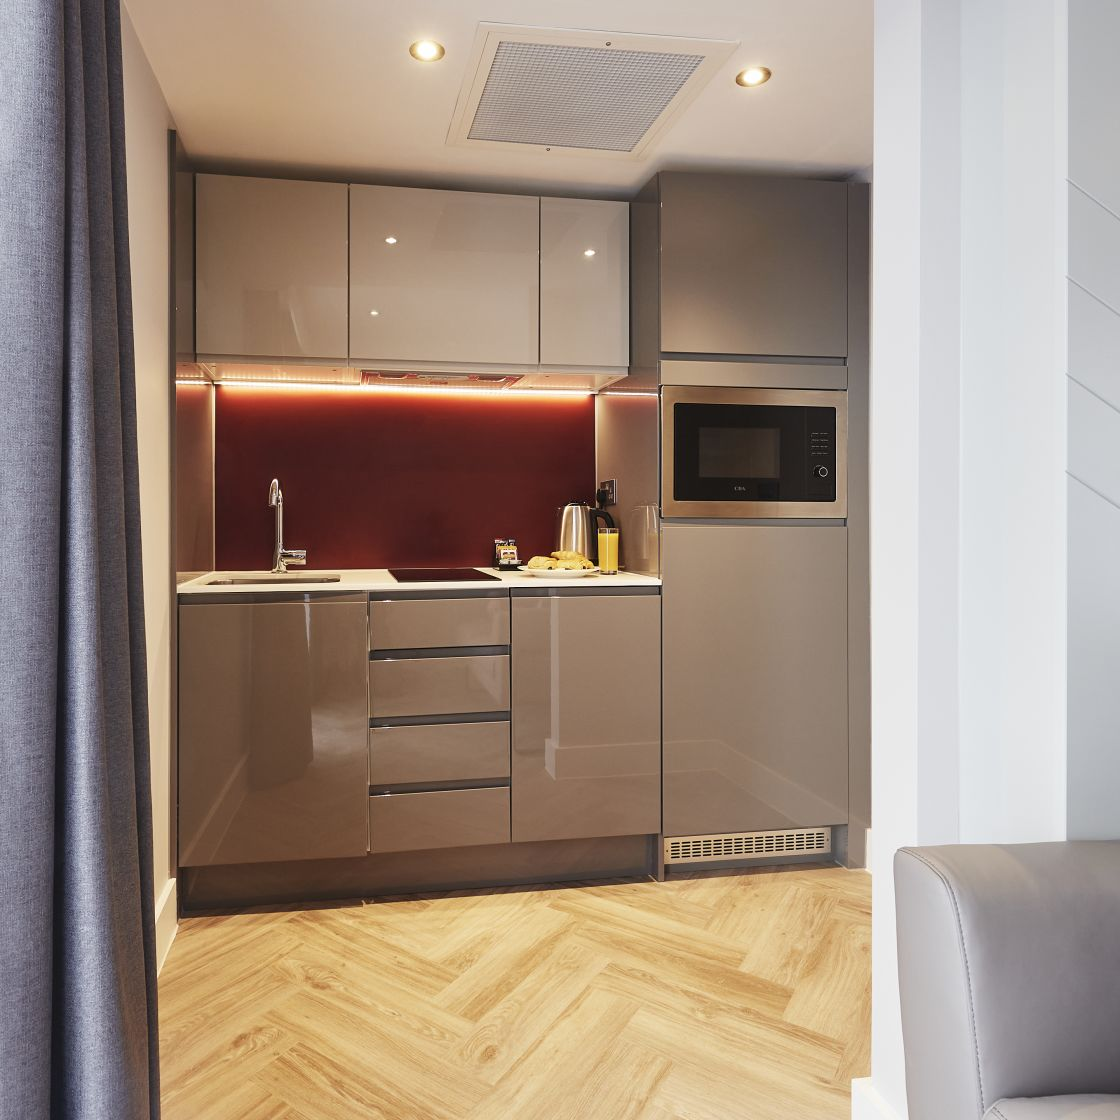 Neo Studio Student Apartment in Newcastle with Fully Equipped Kitchen. IconInc @ Roomzzz